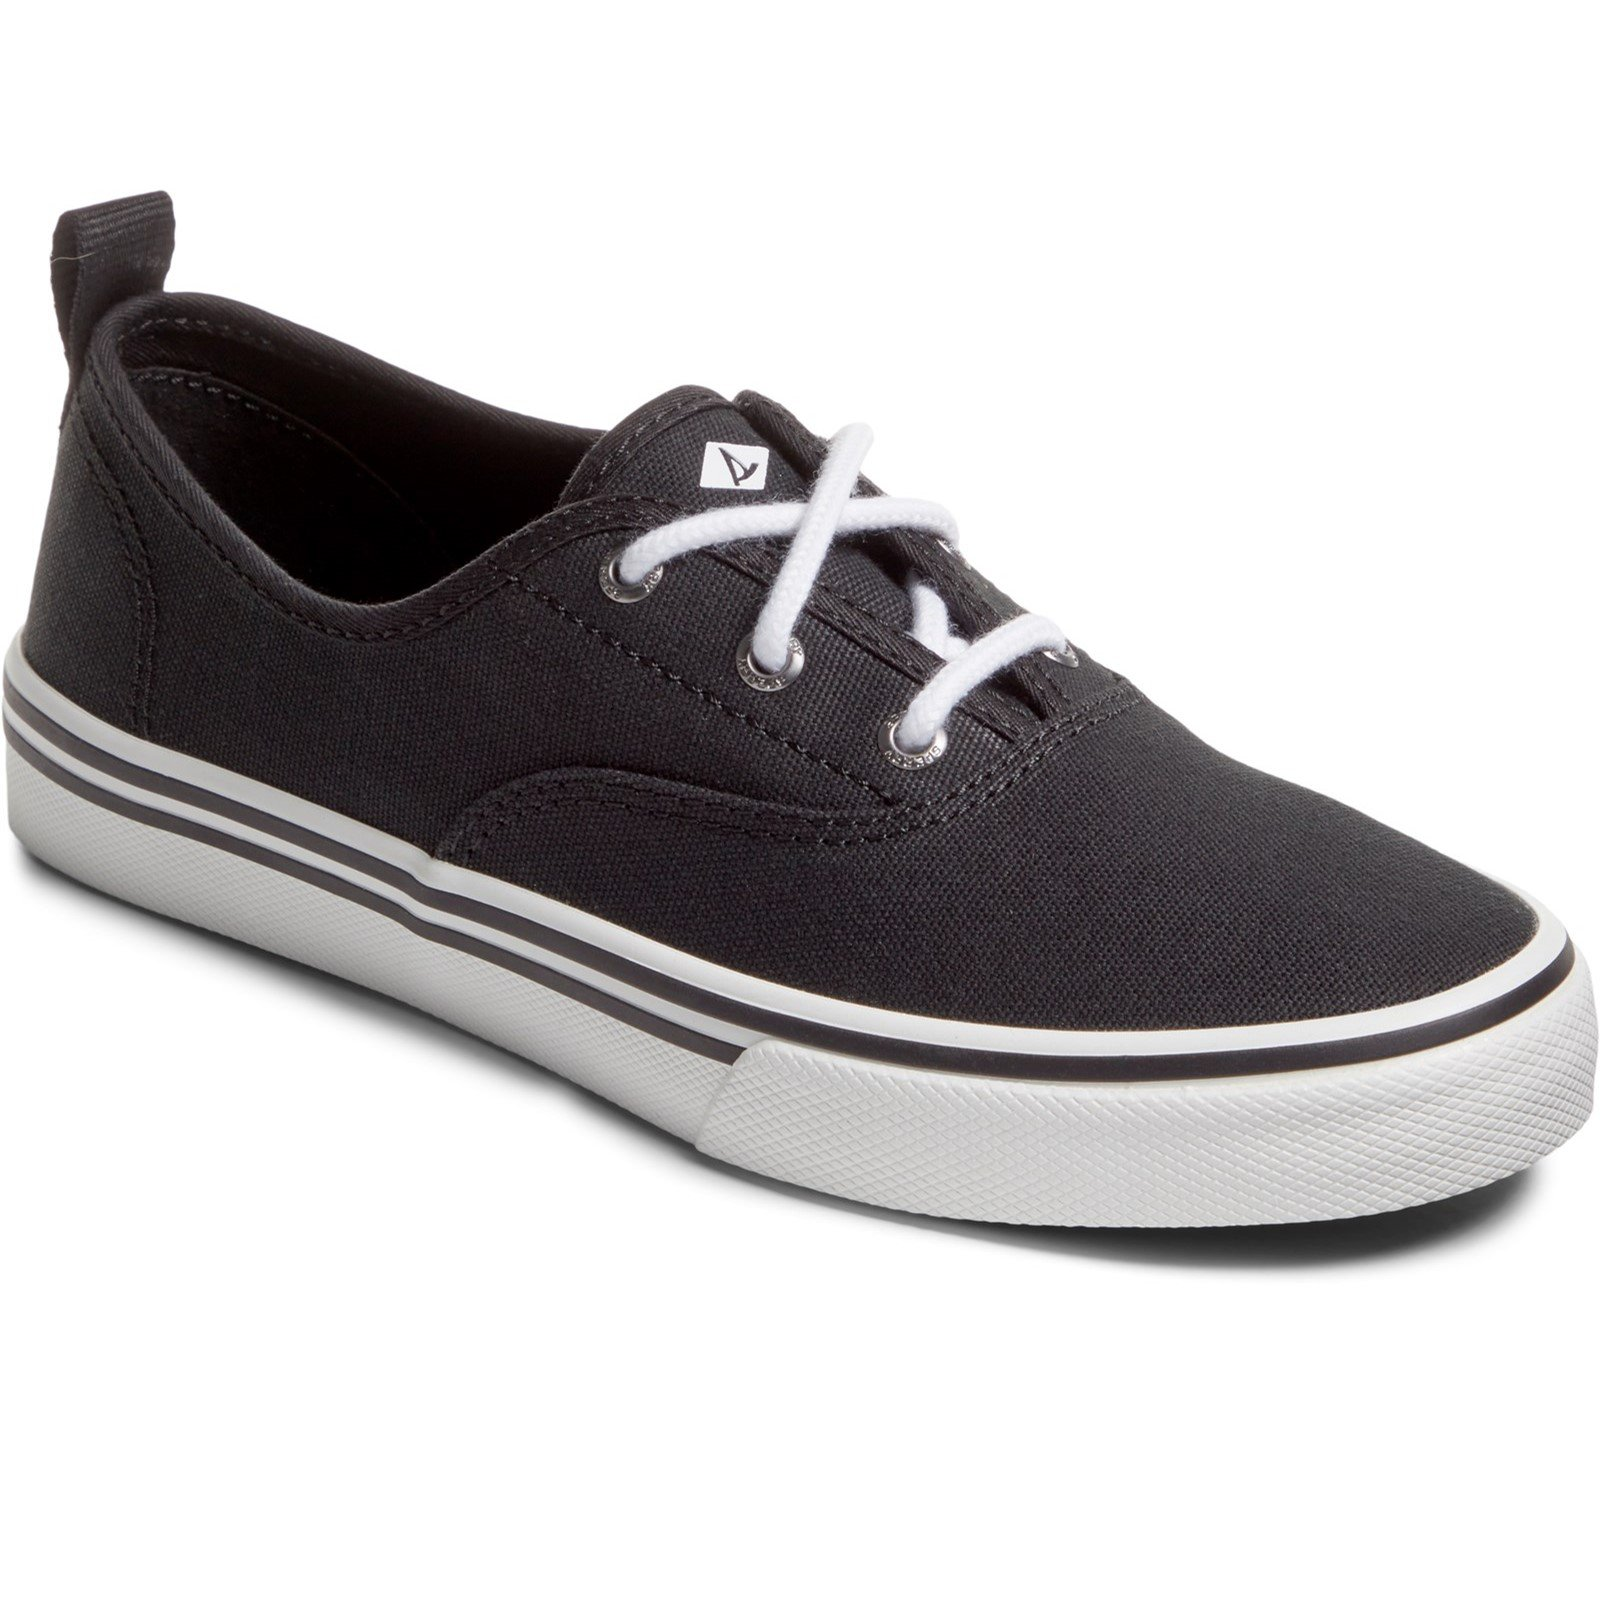 Sperry Women's Crest CVO Trainers Various Colours 32936 - Black 4